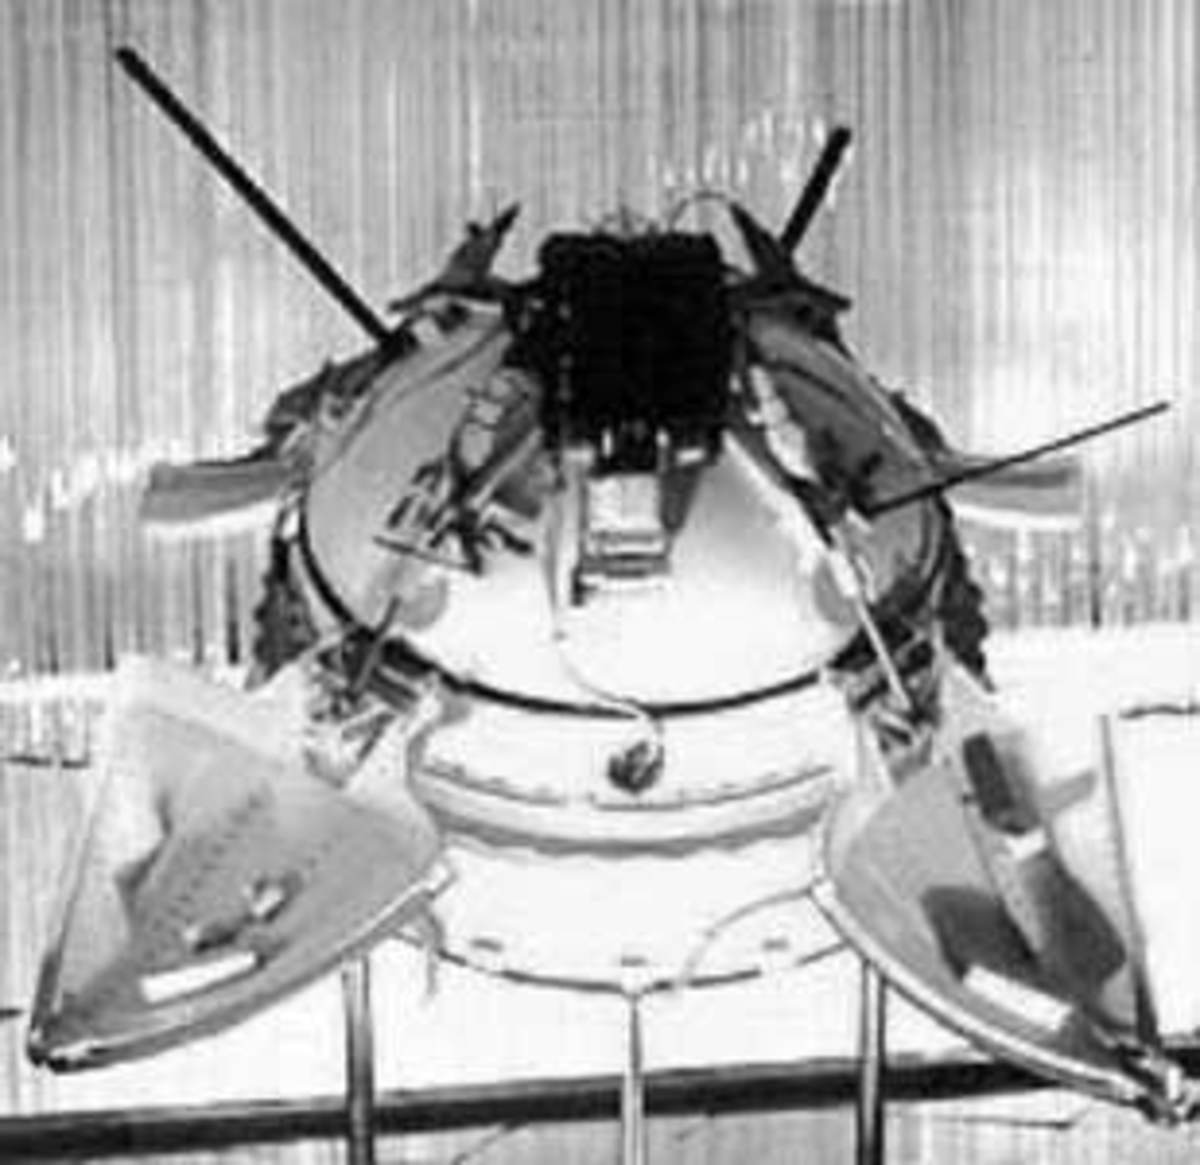 Mars 3 Lander, the first craft to land on Mars in 1971 from the former Soviet Union (now Russia)